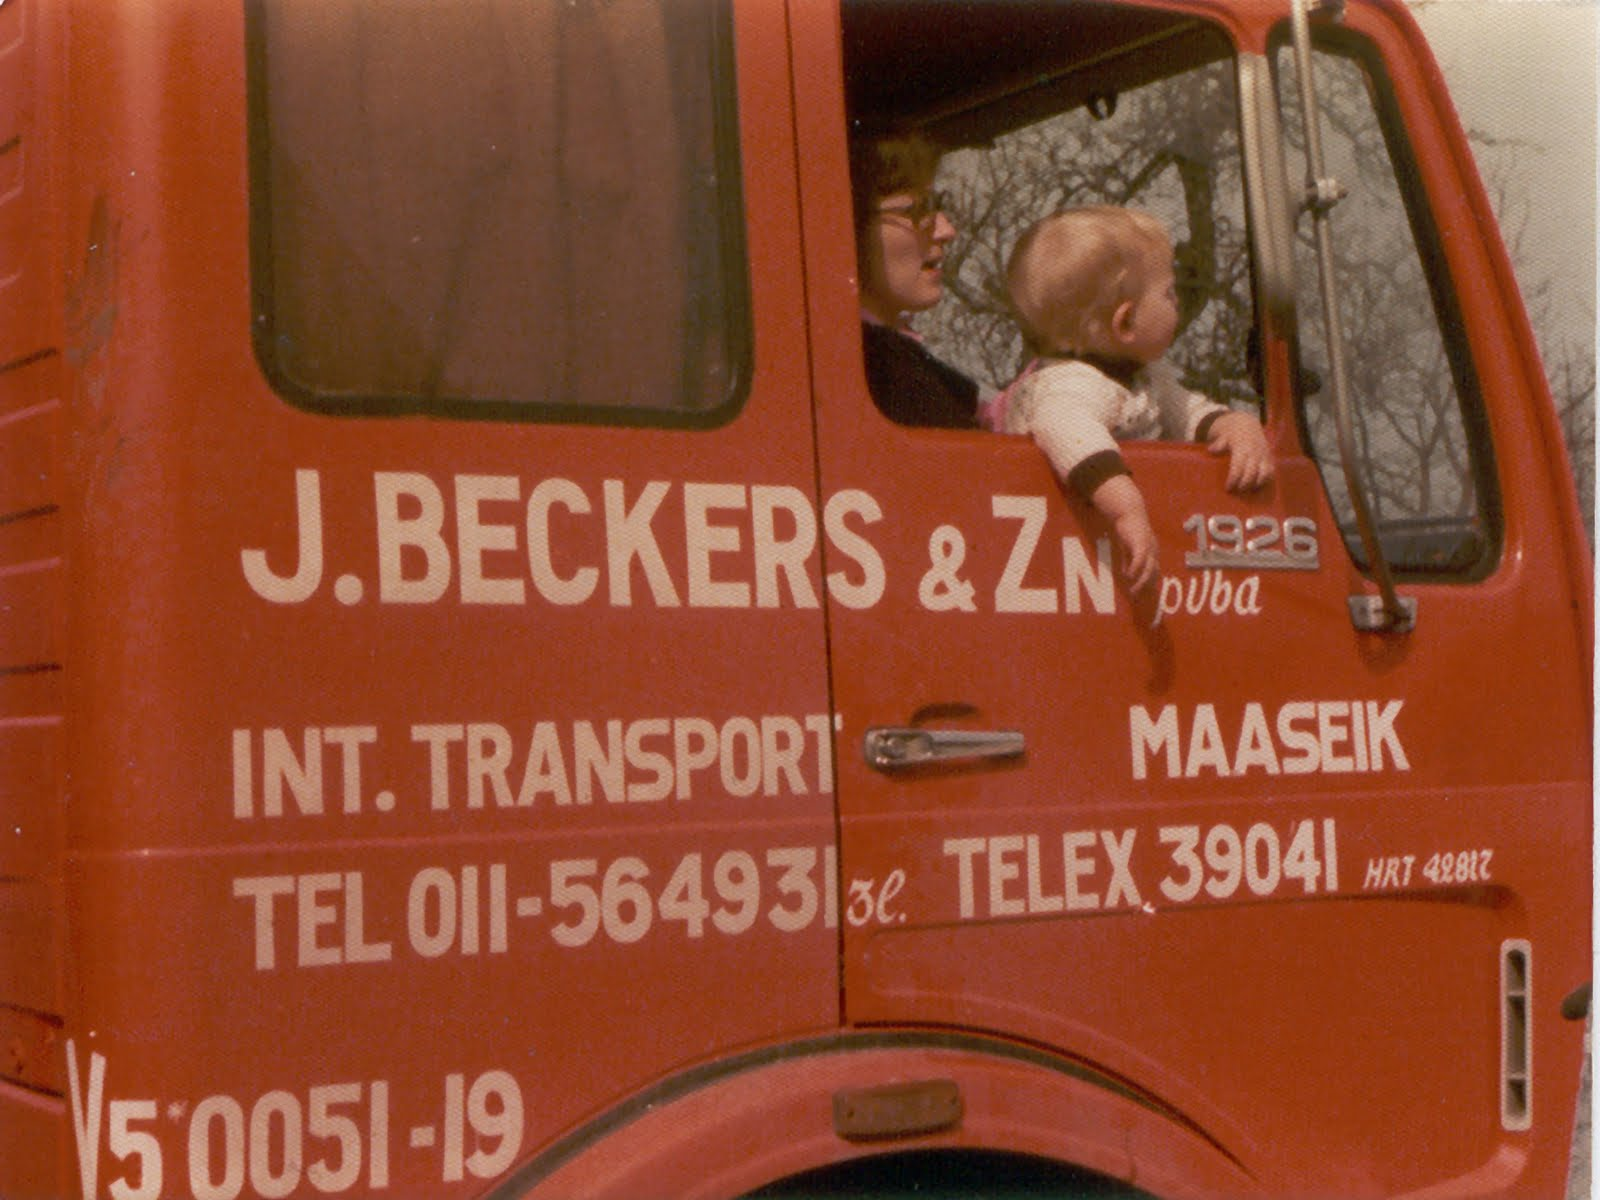 April 1977 MB 1926 Kasel bei Trier